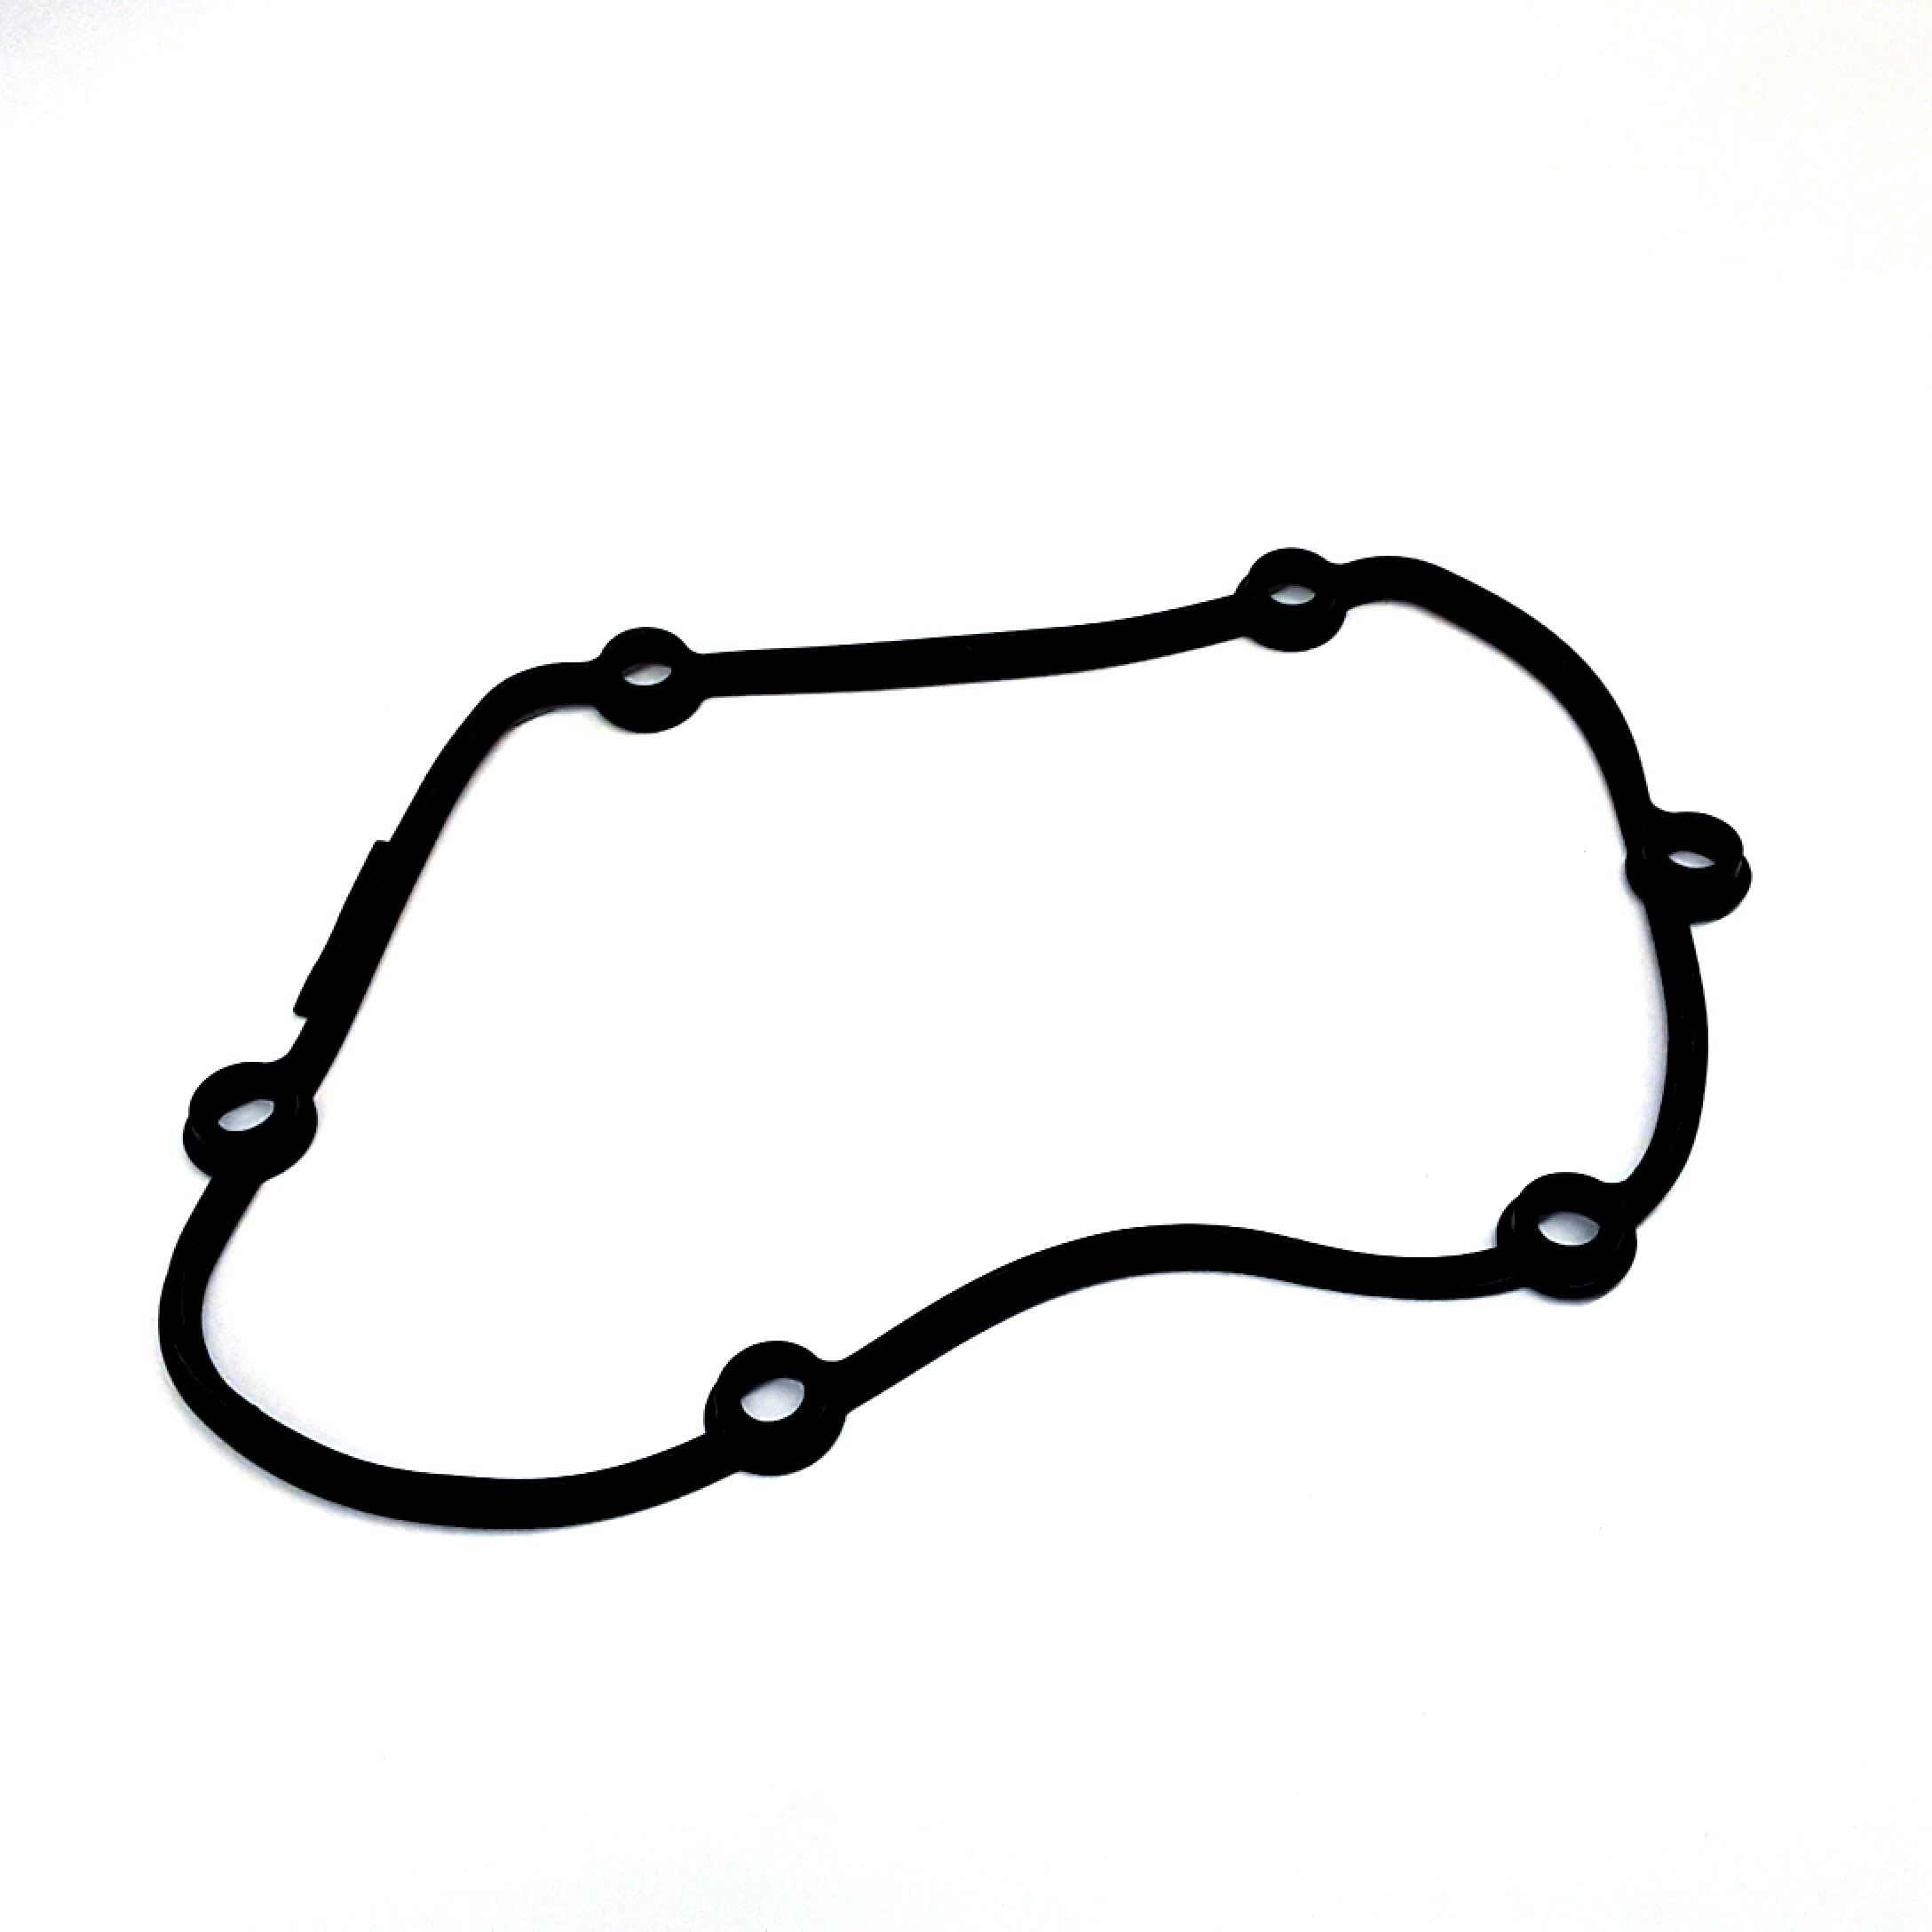 06k103483 - engine timing cover gasket  front cover gasket  liter  transaxle